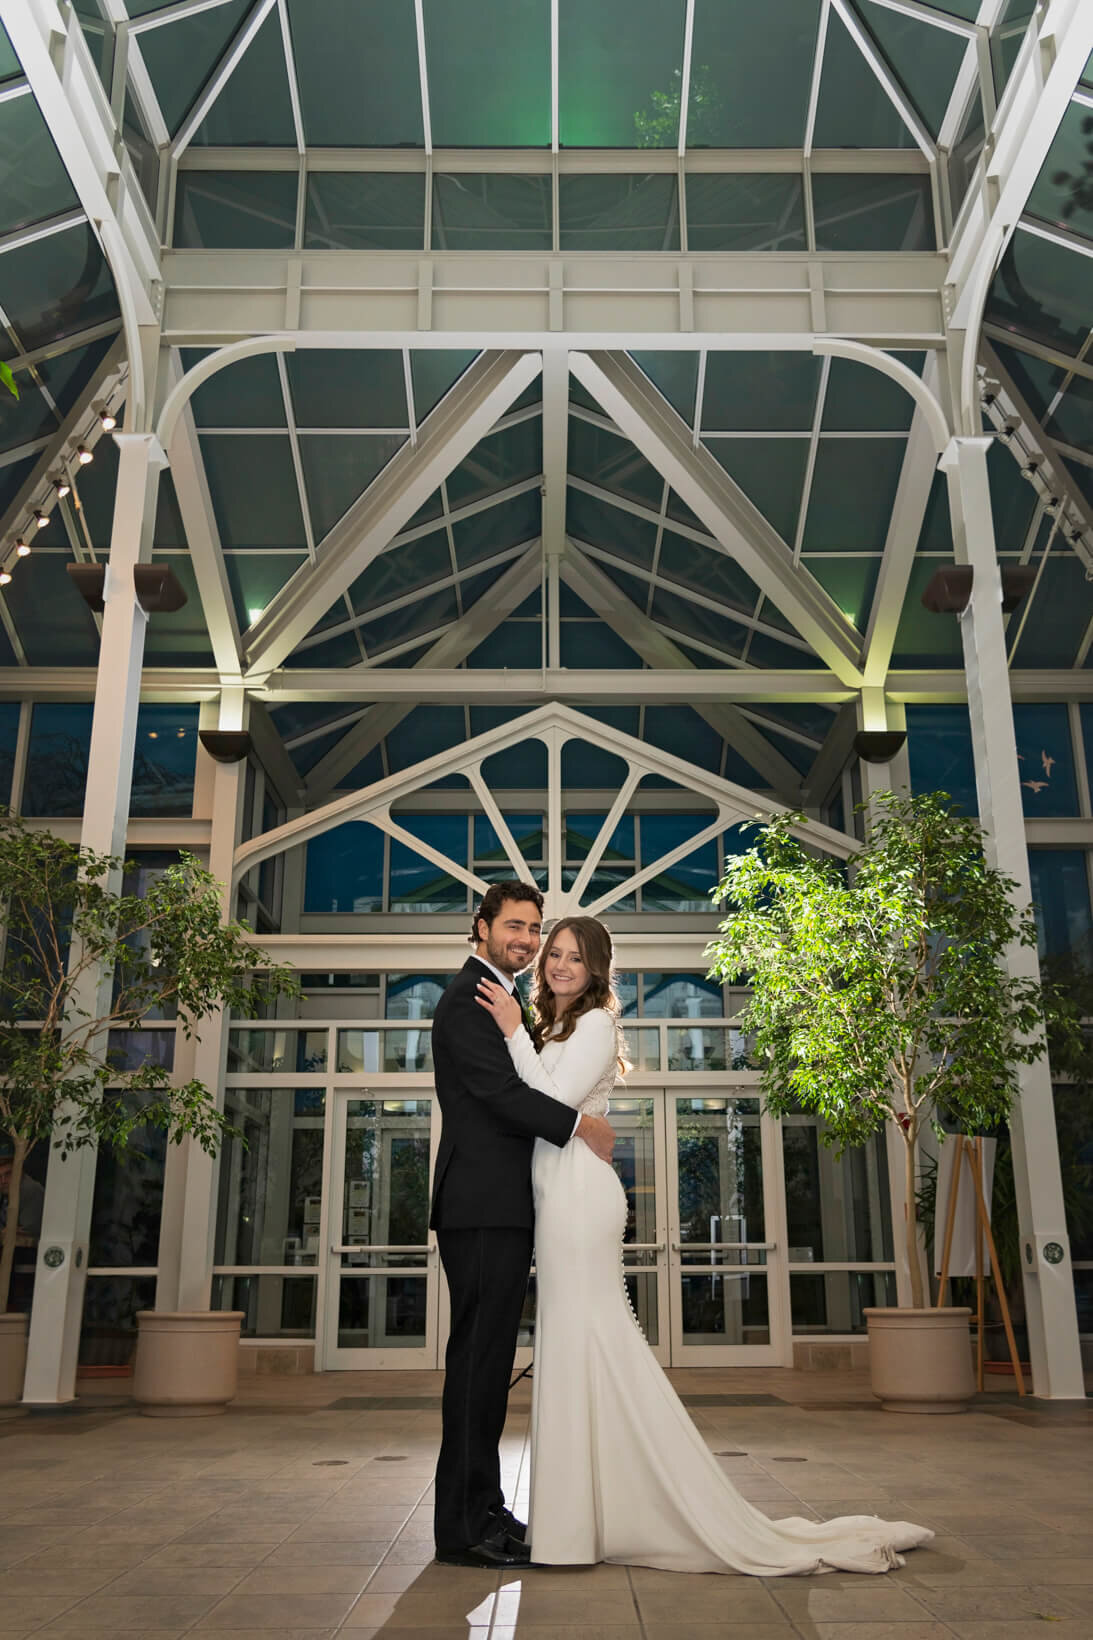 Boerner-Botanical-Gardens-Wedding-Milwaukee-Wisconsin-52